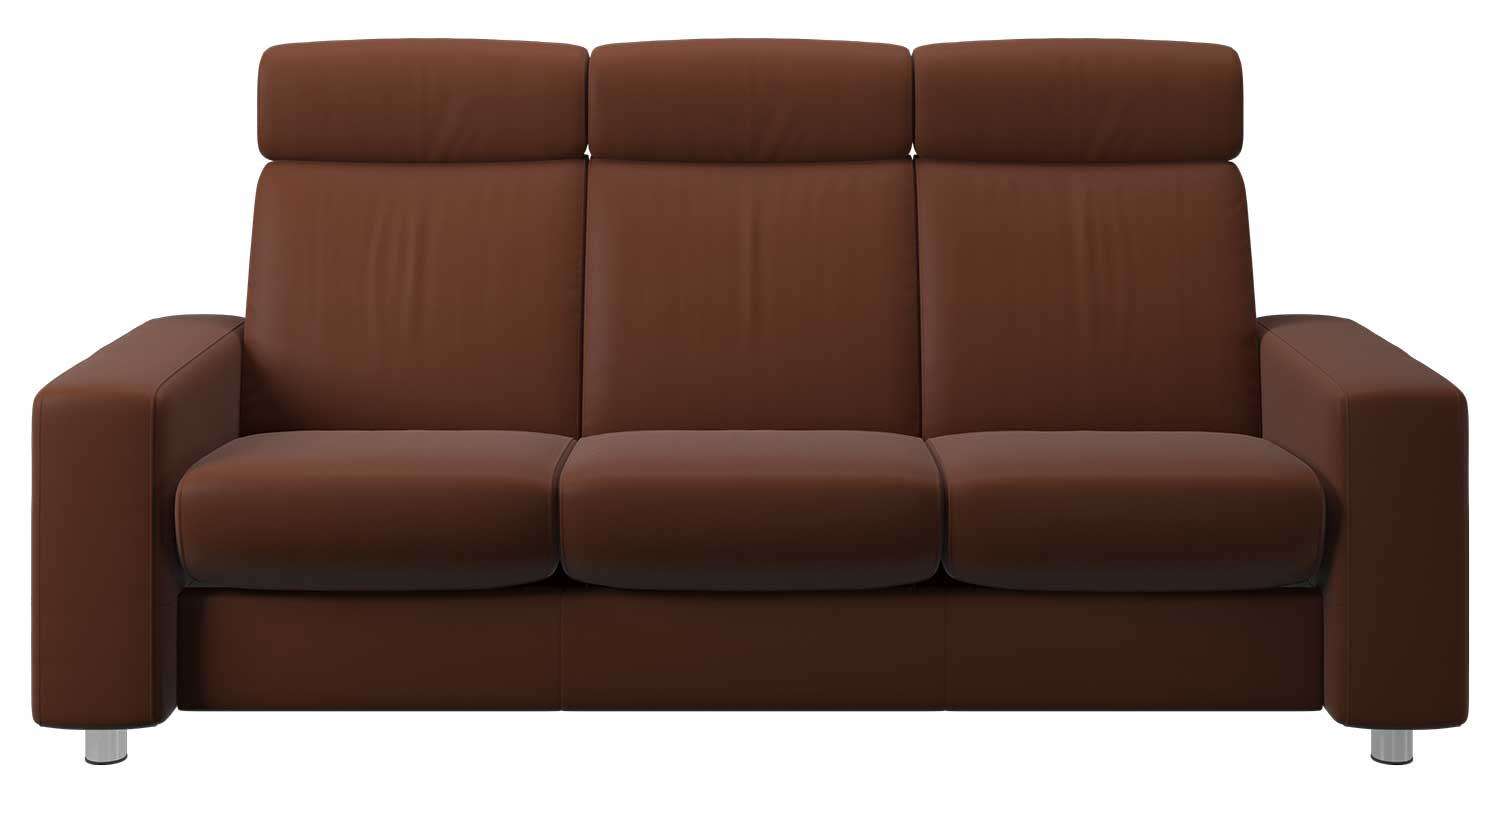 high back sofa and loveseat rachlin circle furniture pause highback stressless reclining living sofas loveseats